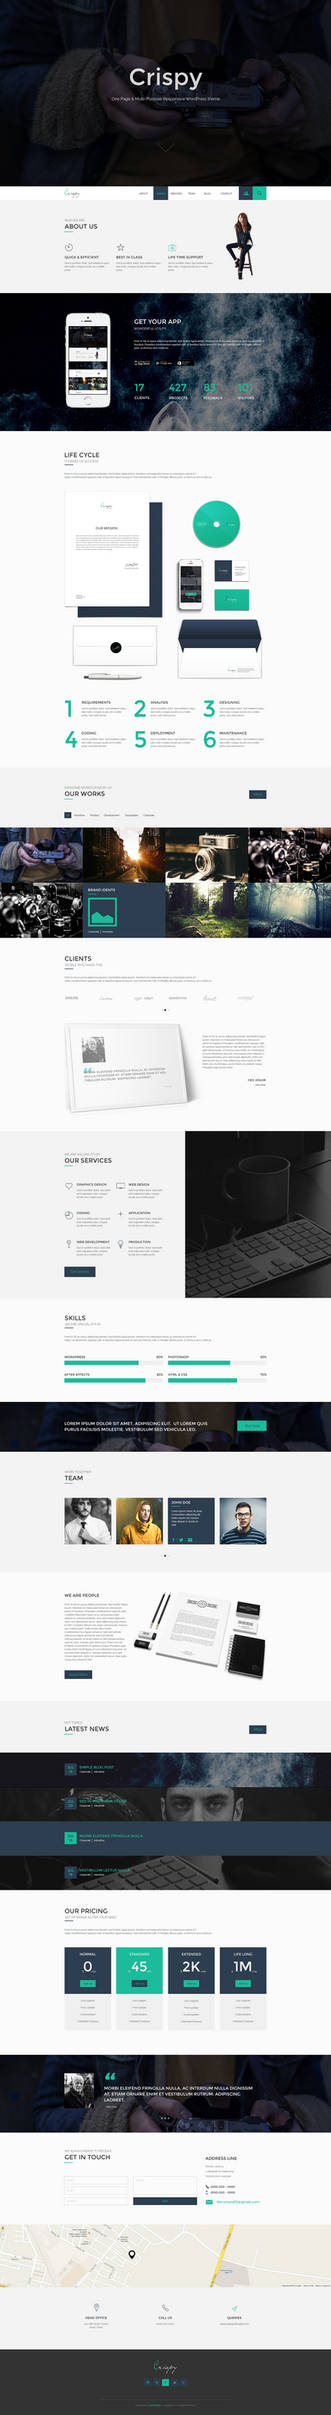 Crispy - One Multi Page Template